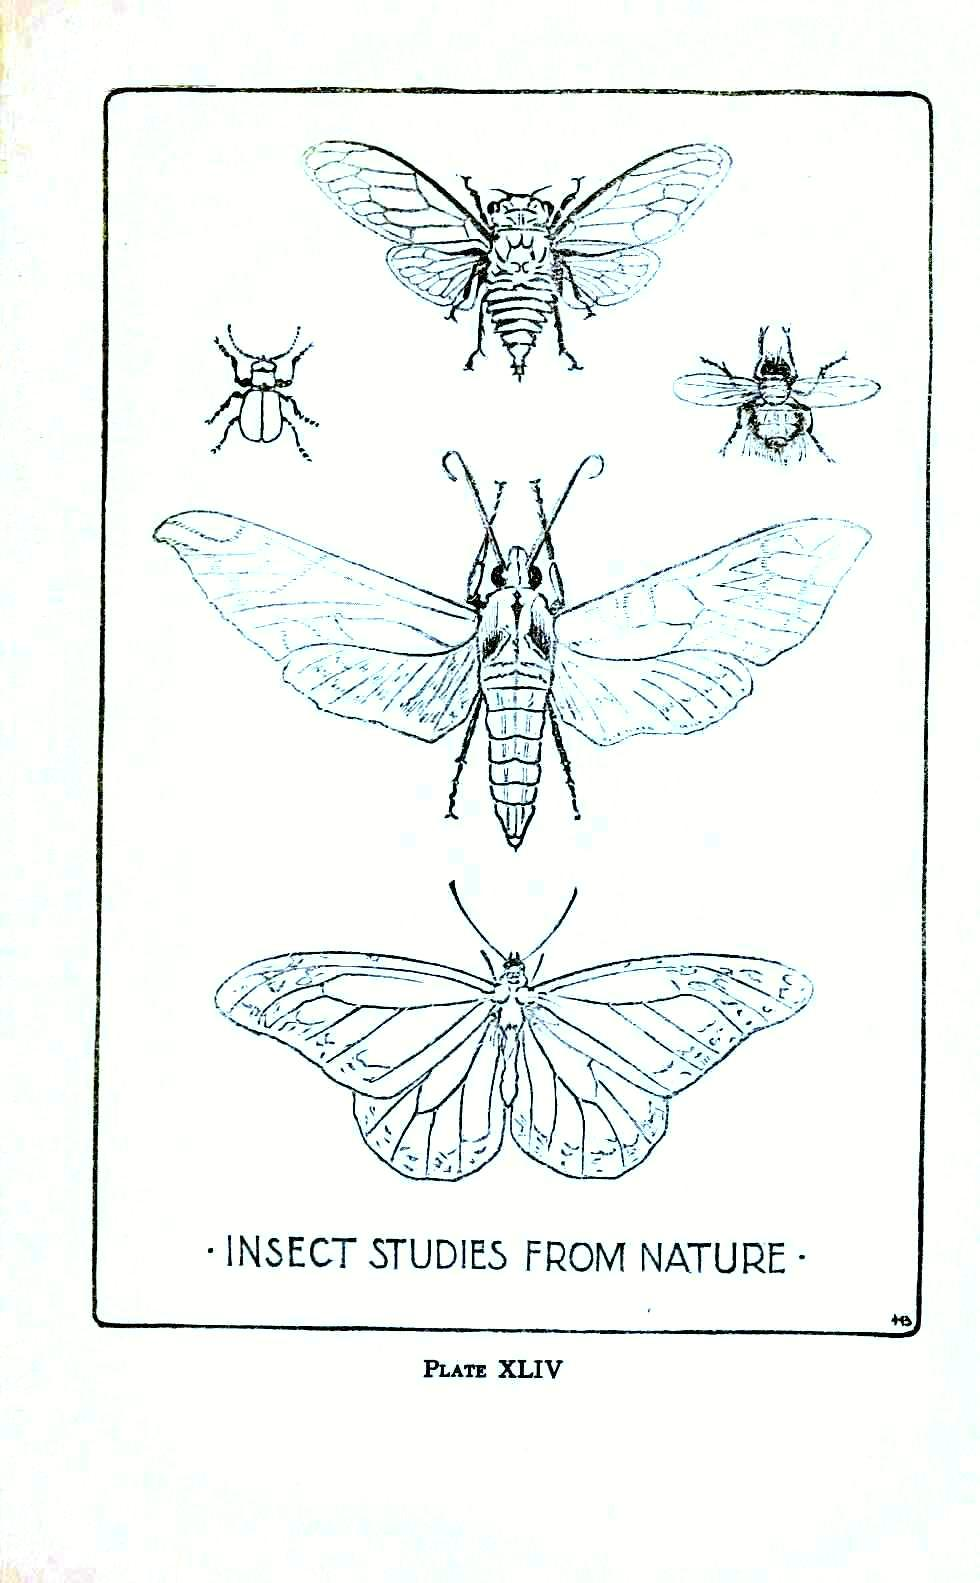 Line Drawing Insects : Animal insect line drawings vintage printable